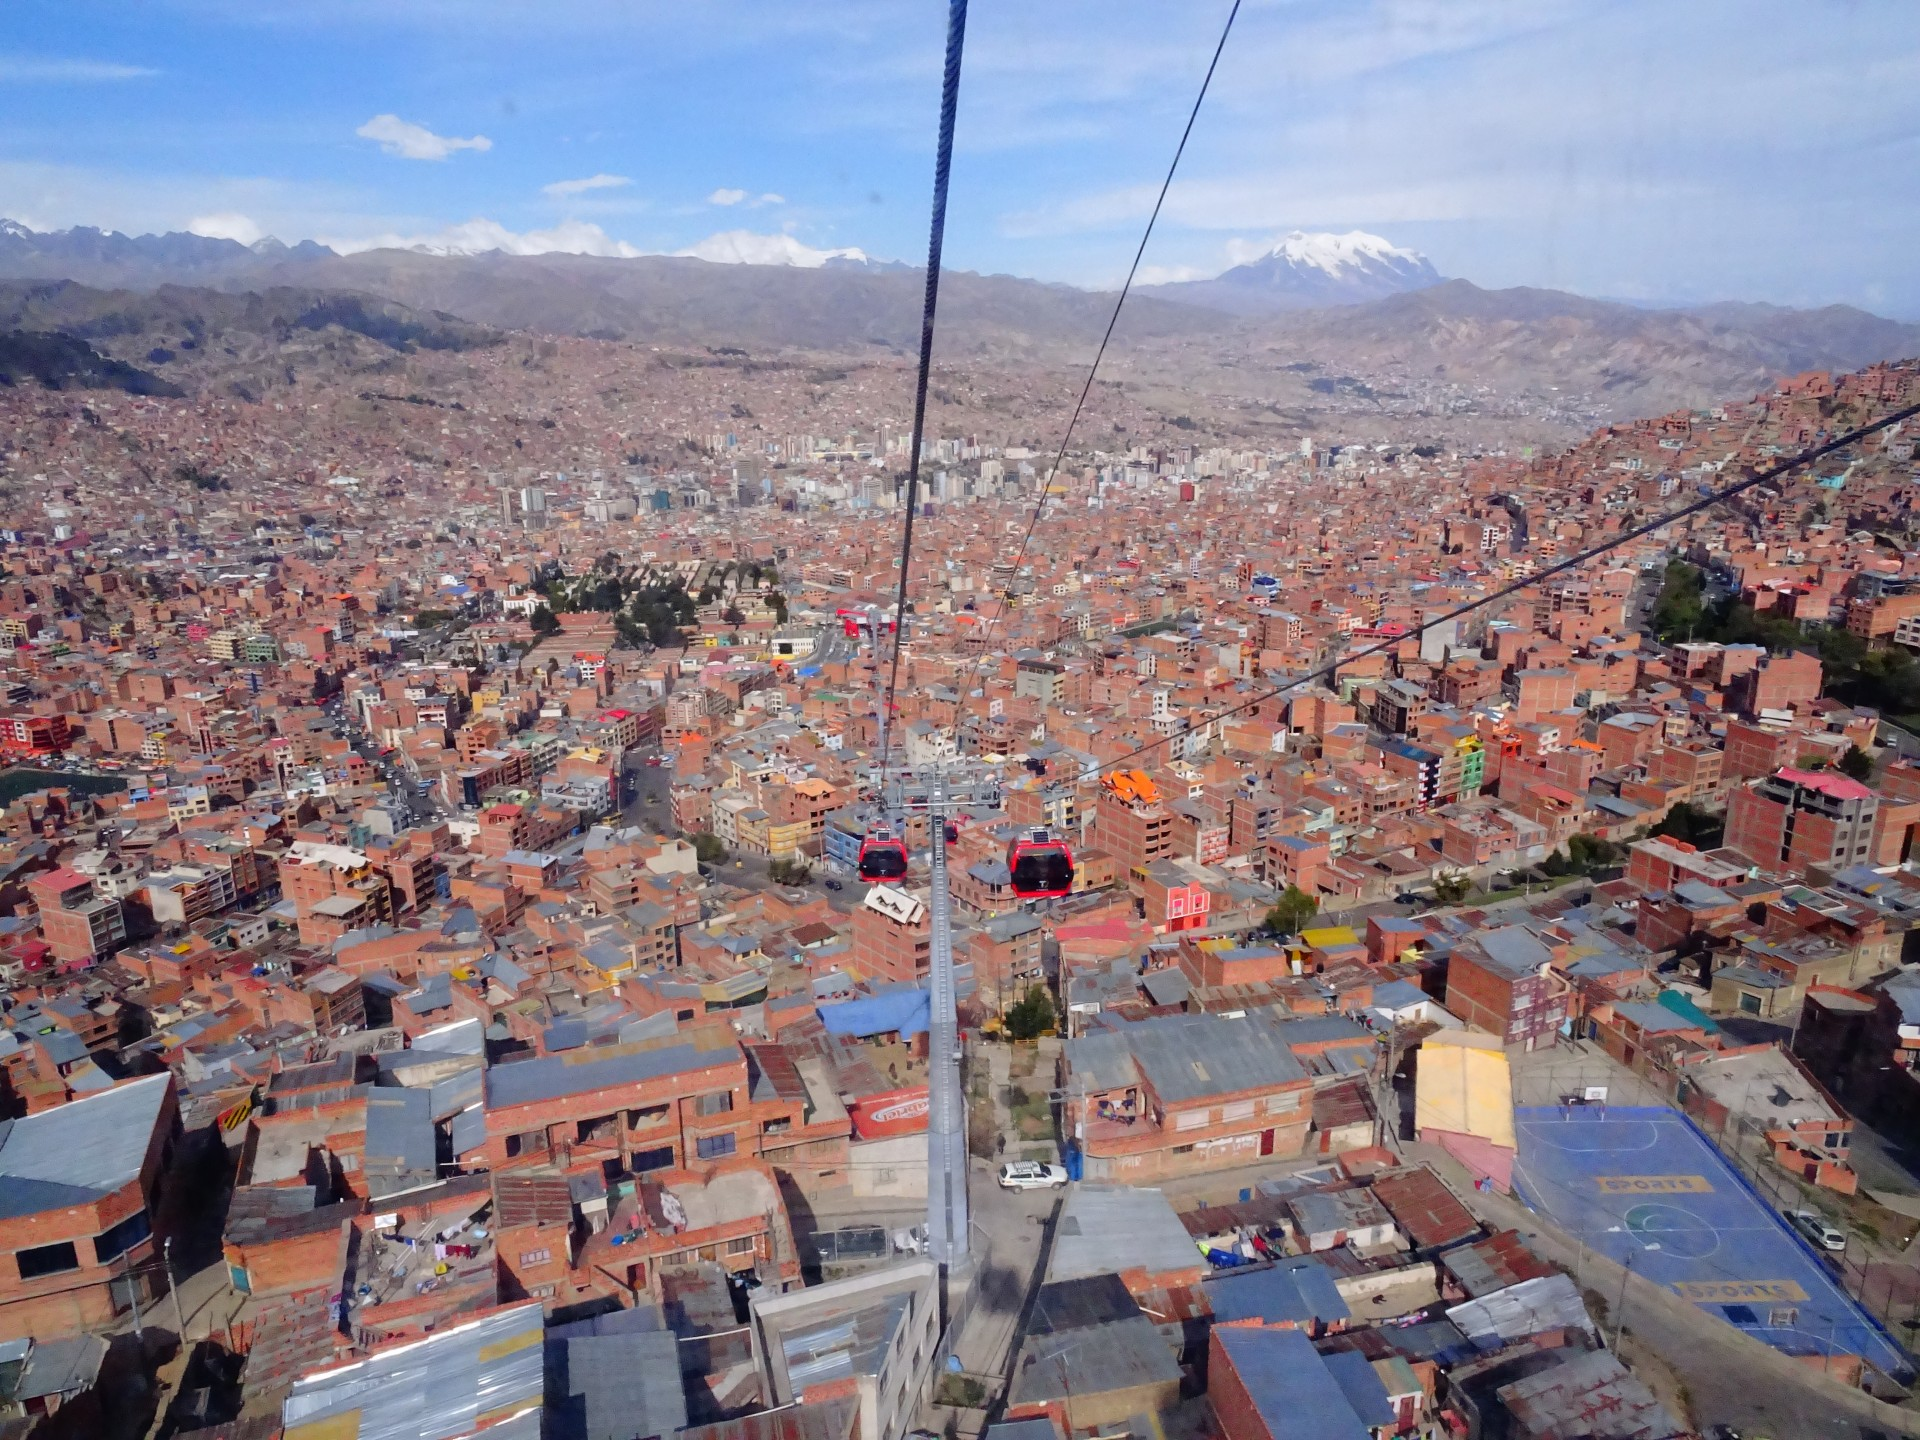 It's remarkably difficult to get all of La Paz in one photograph.